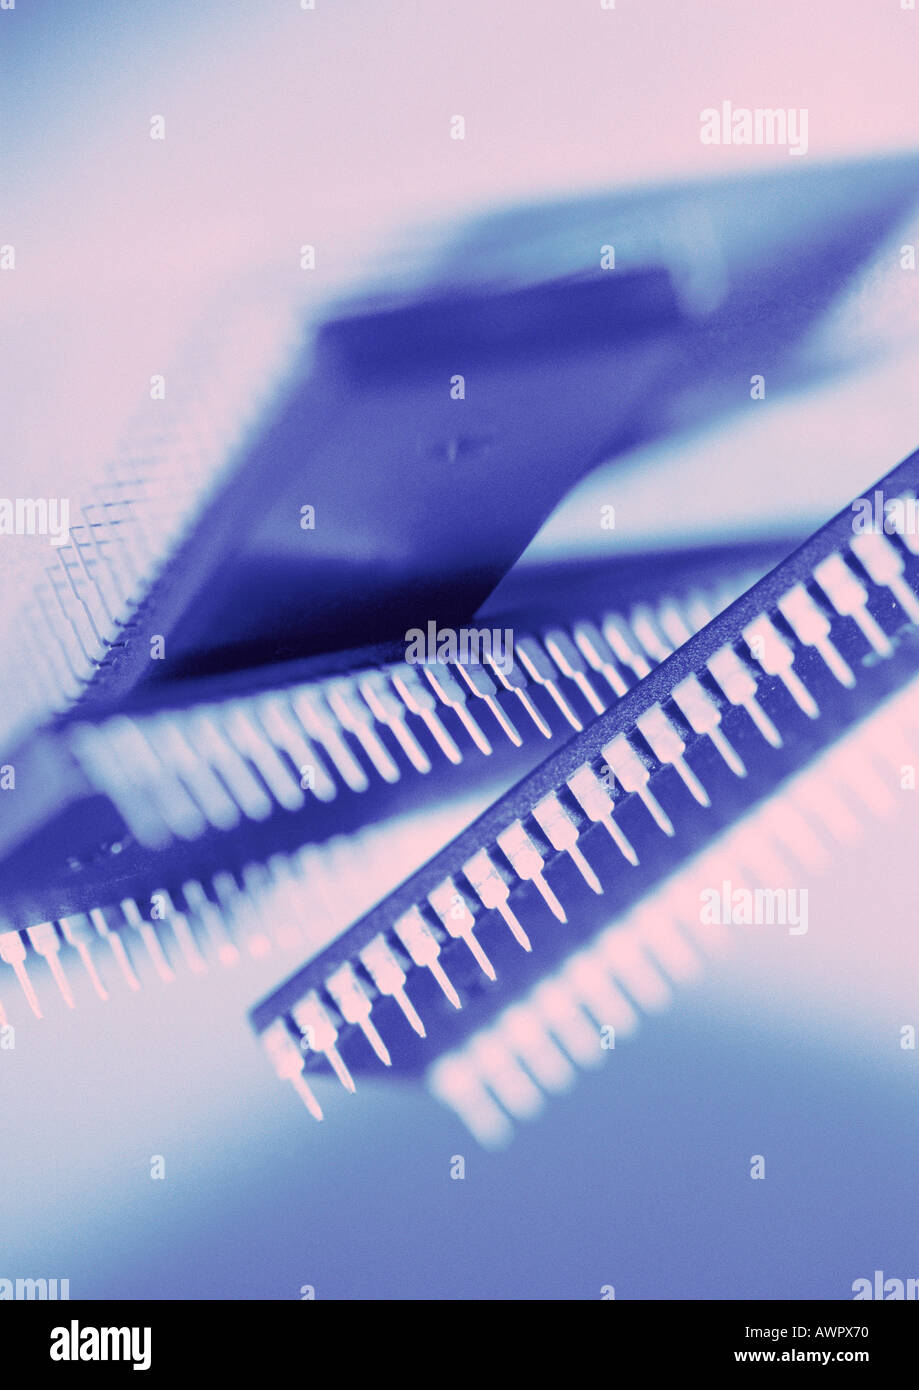 Computer circuits, close-up - Stock Image